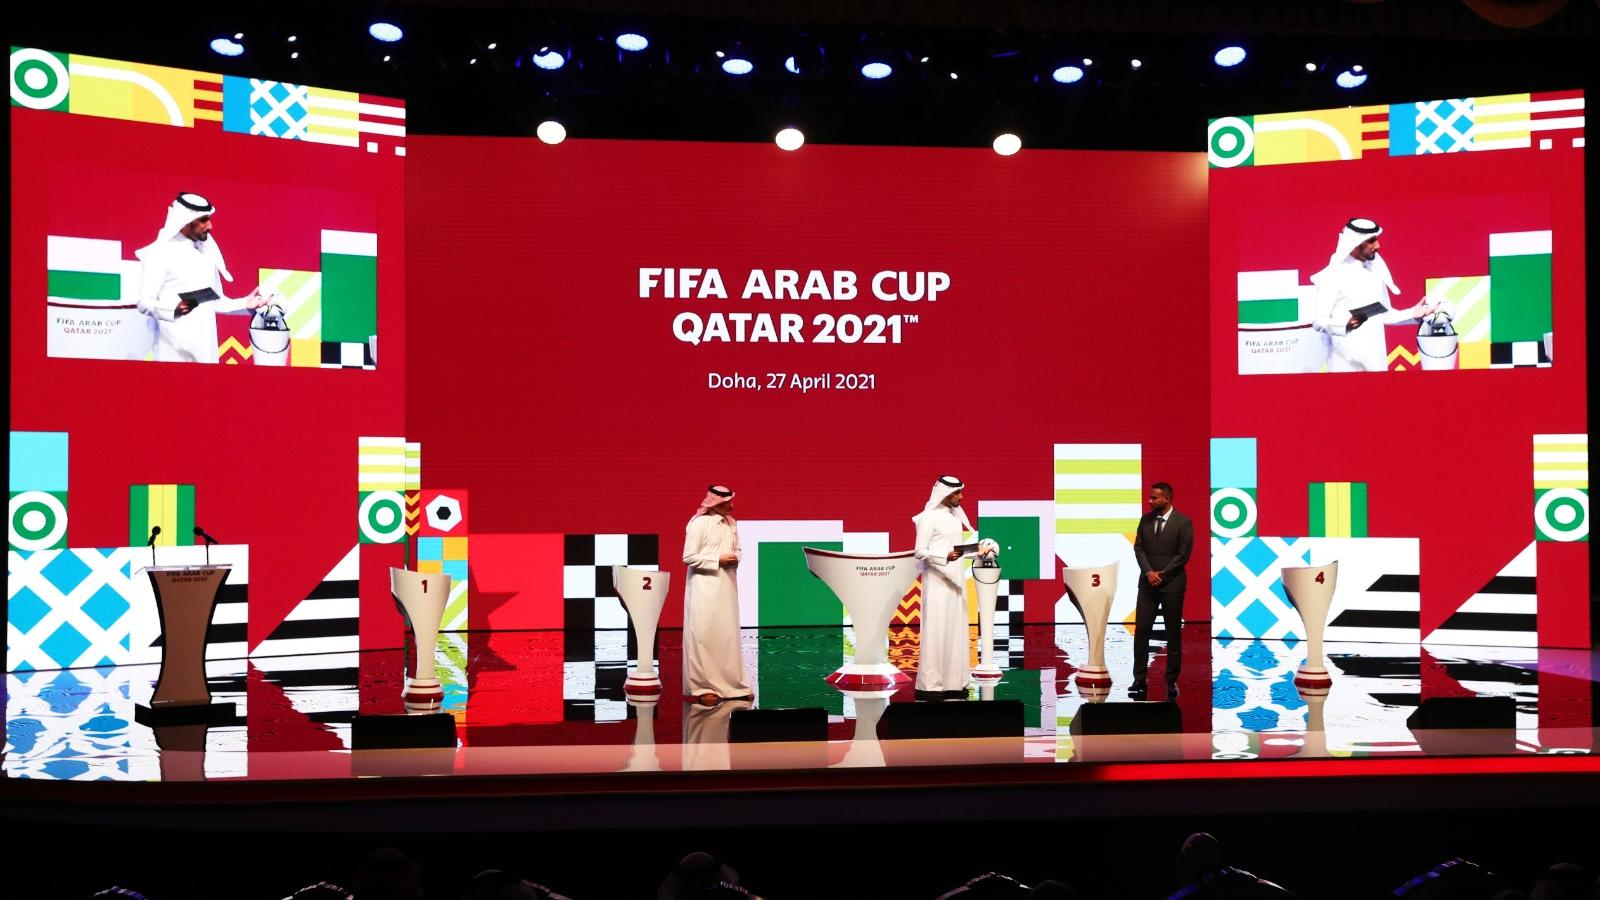 WATCH: Draw sets the stage for an exciting FIFA Arab Cup Qatar 2021